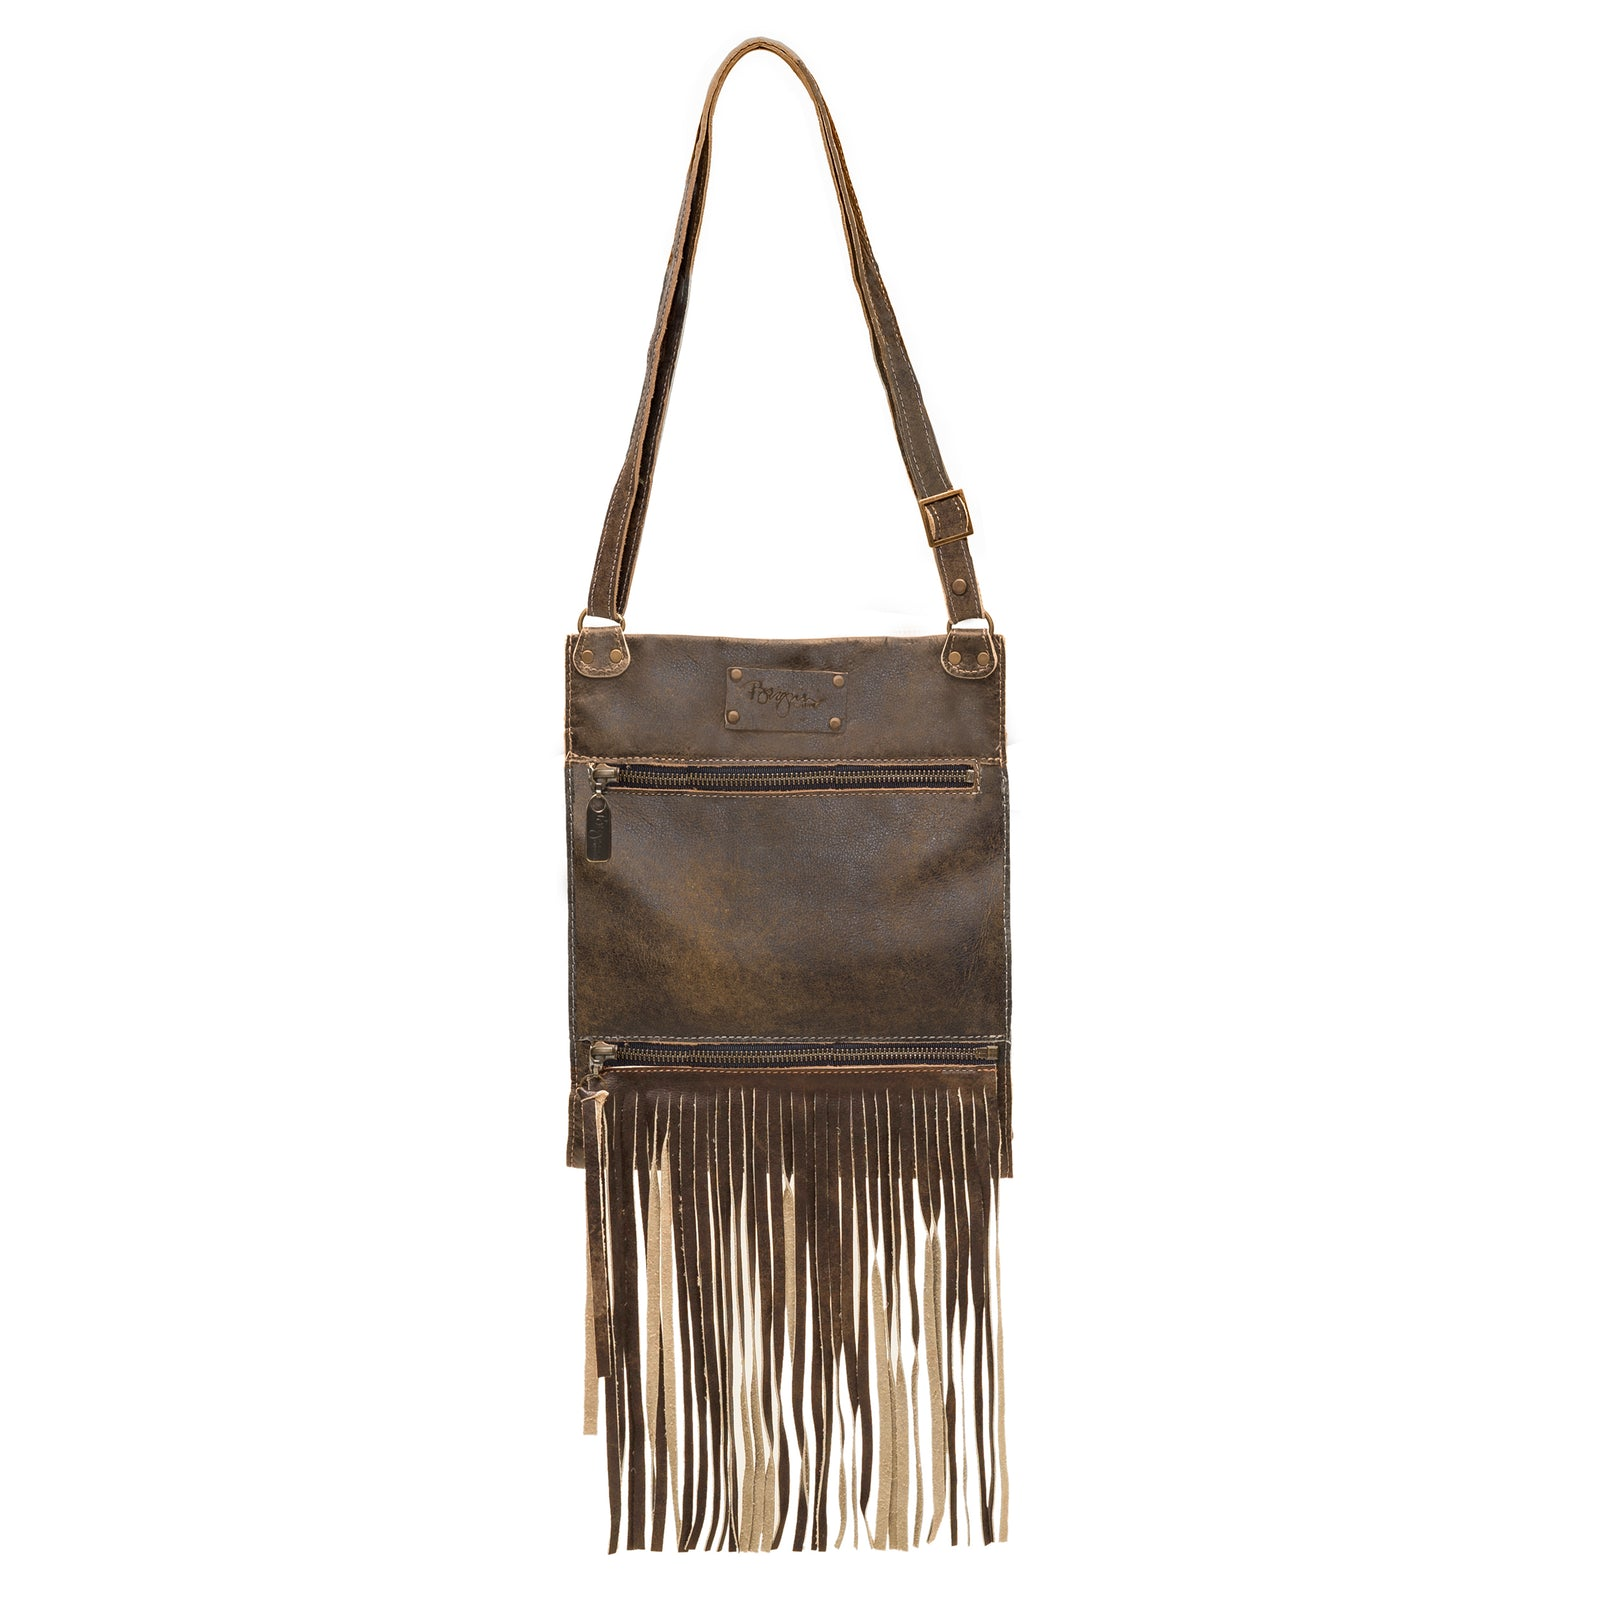 Kari Fringe Crossbody - Woodstock - Brynn Capella, Small Crossbody